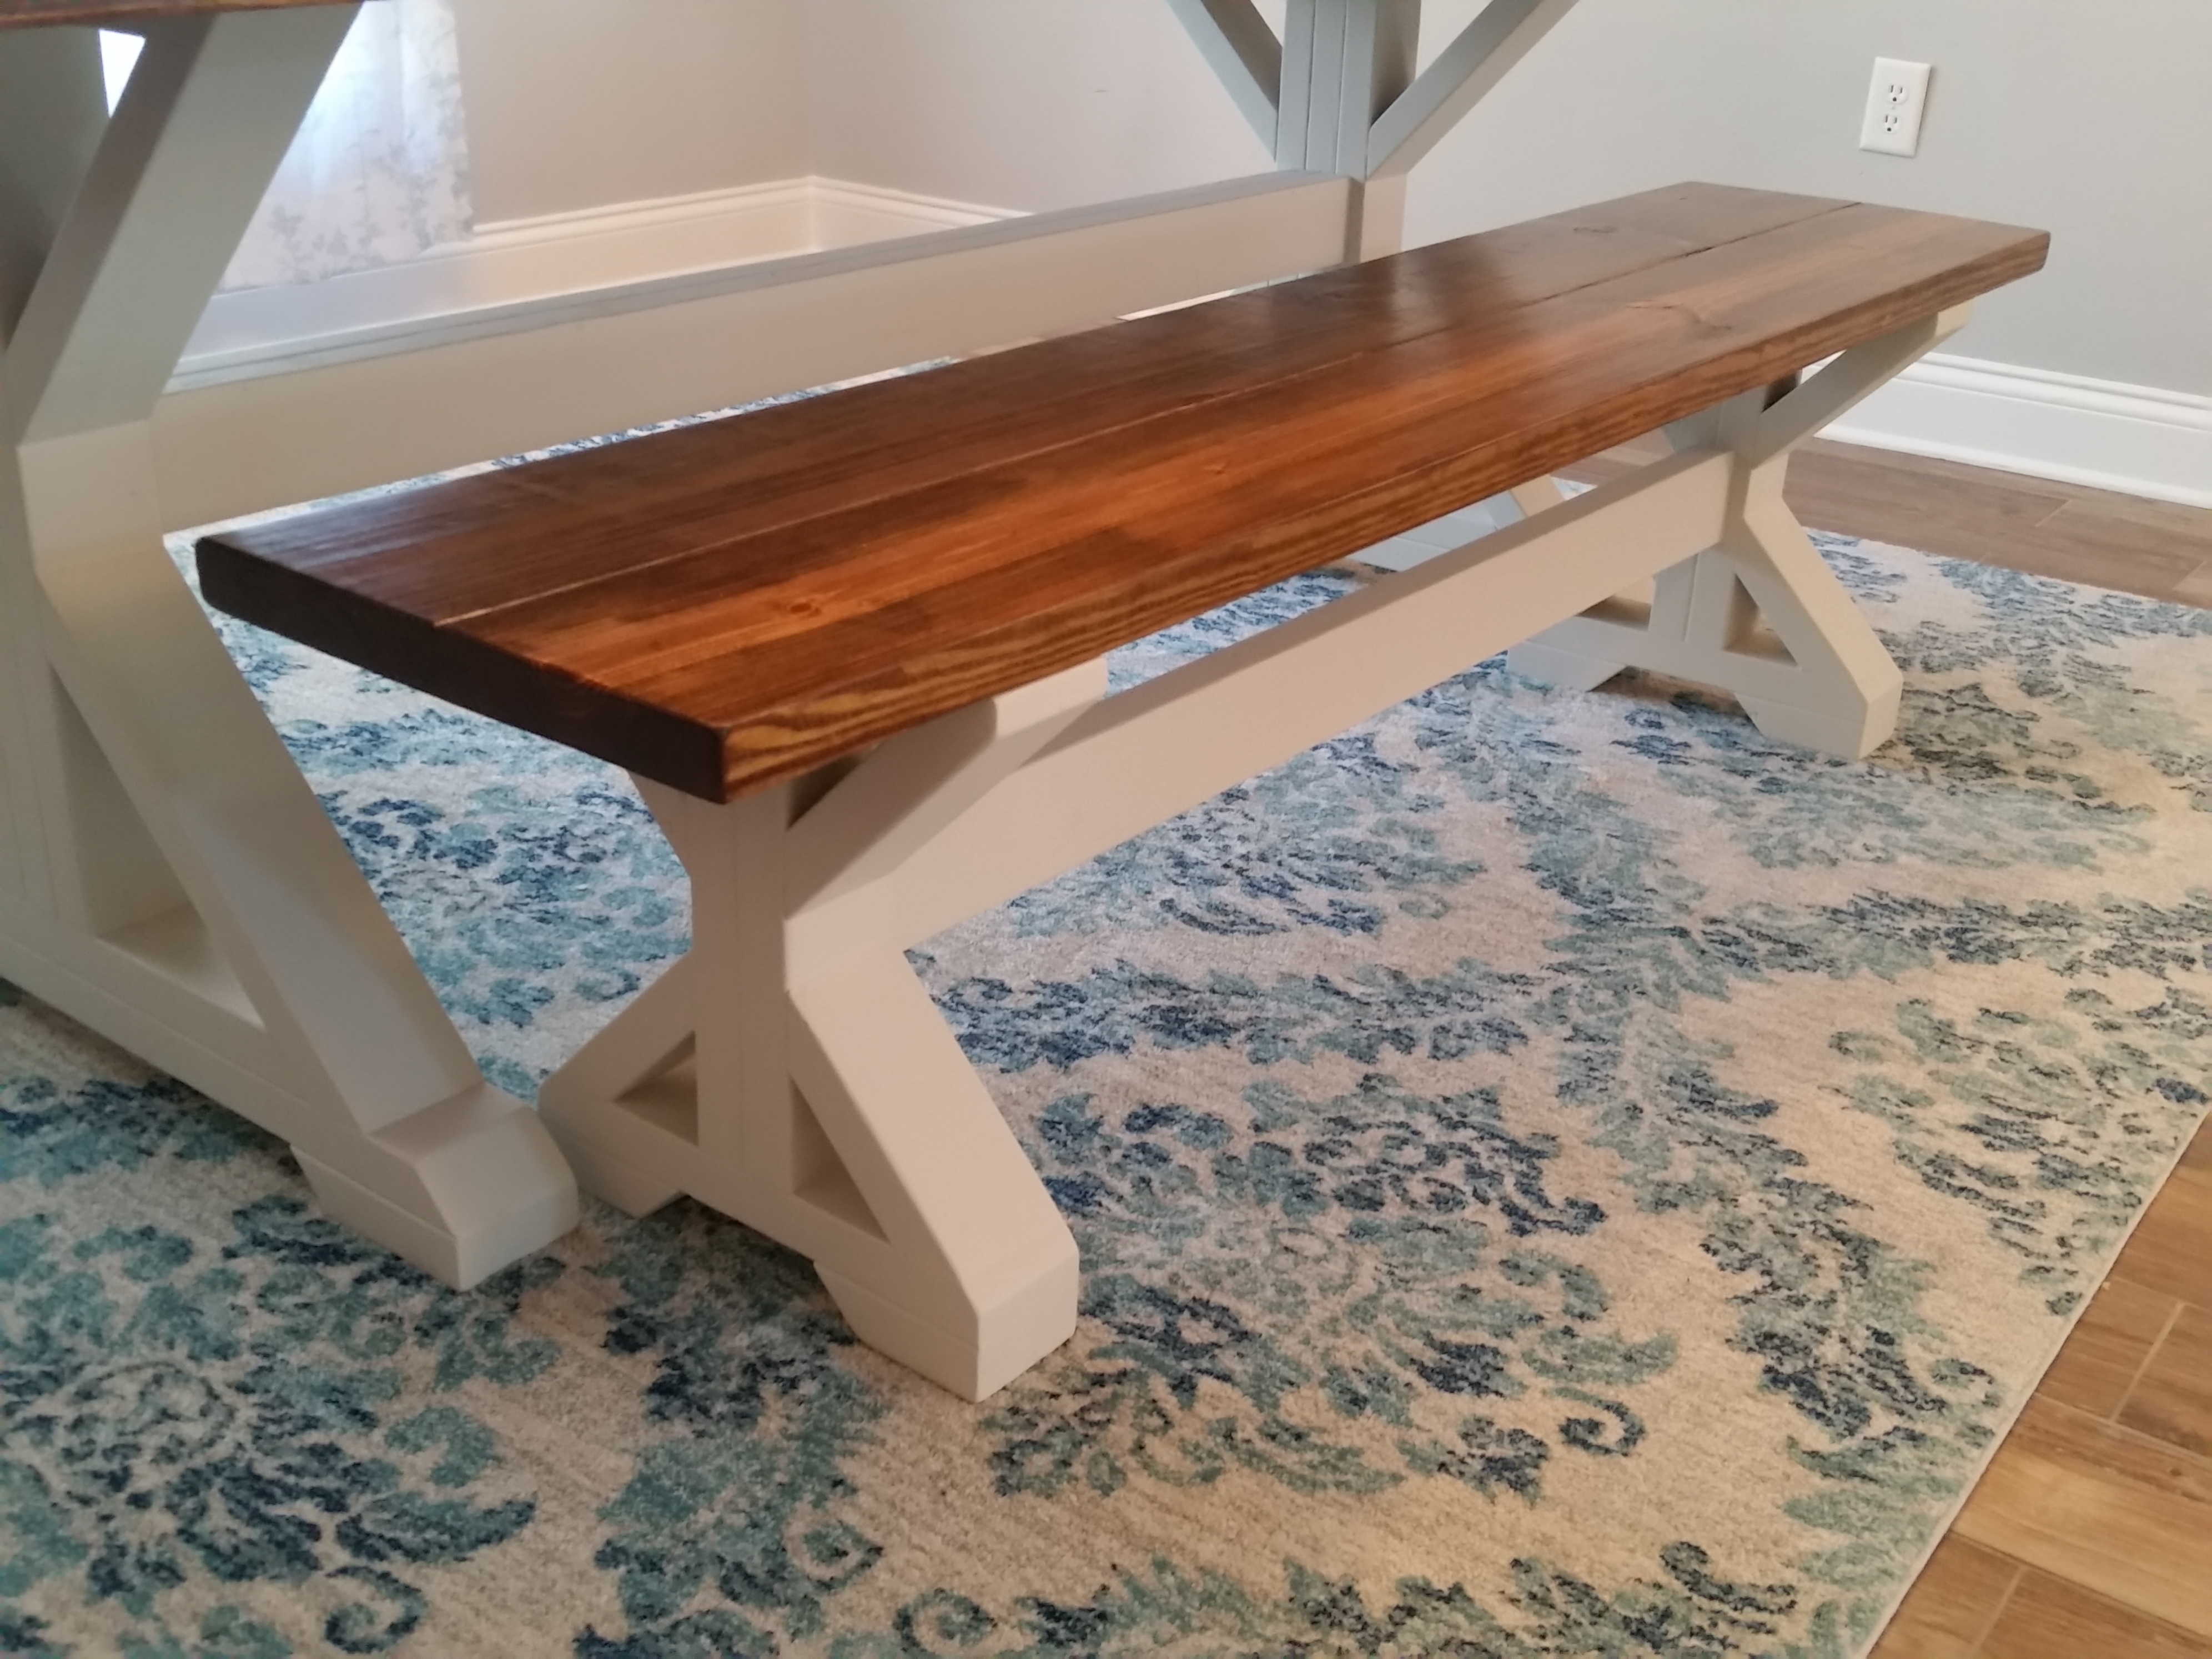 trestle-table-005